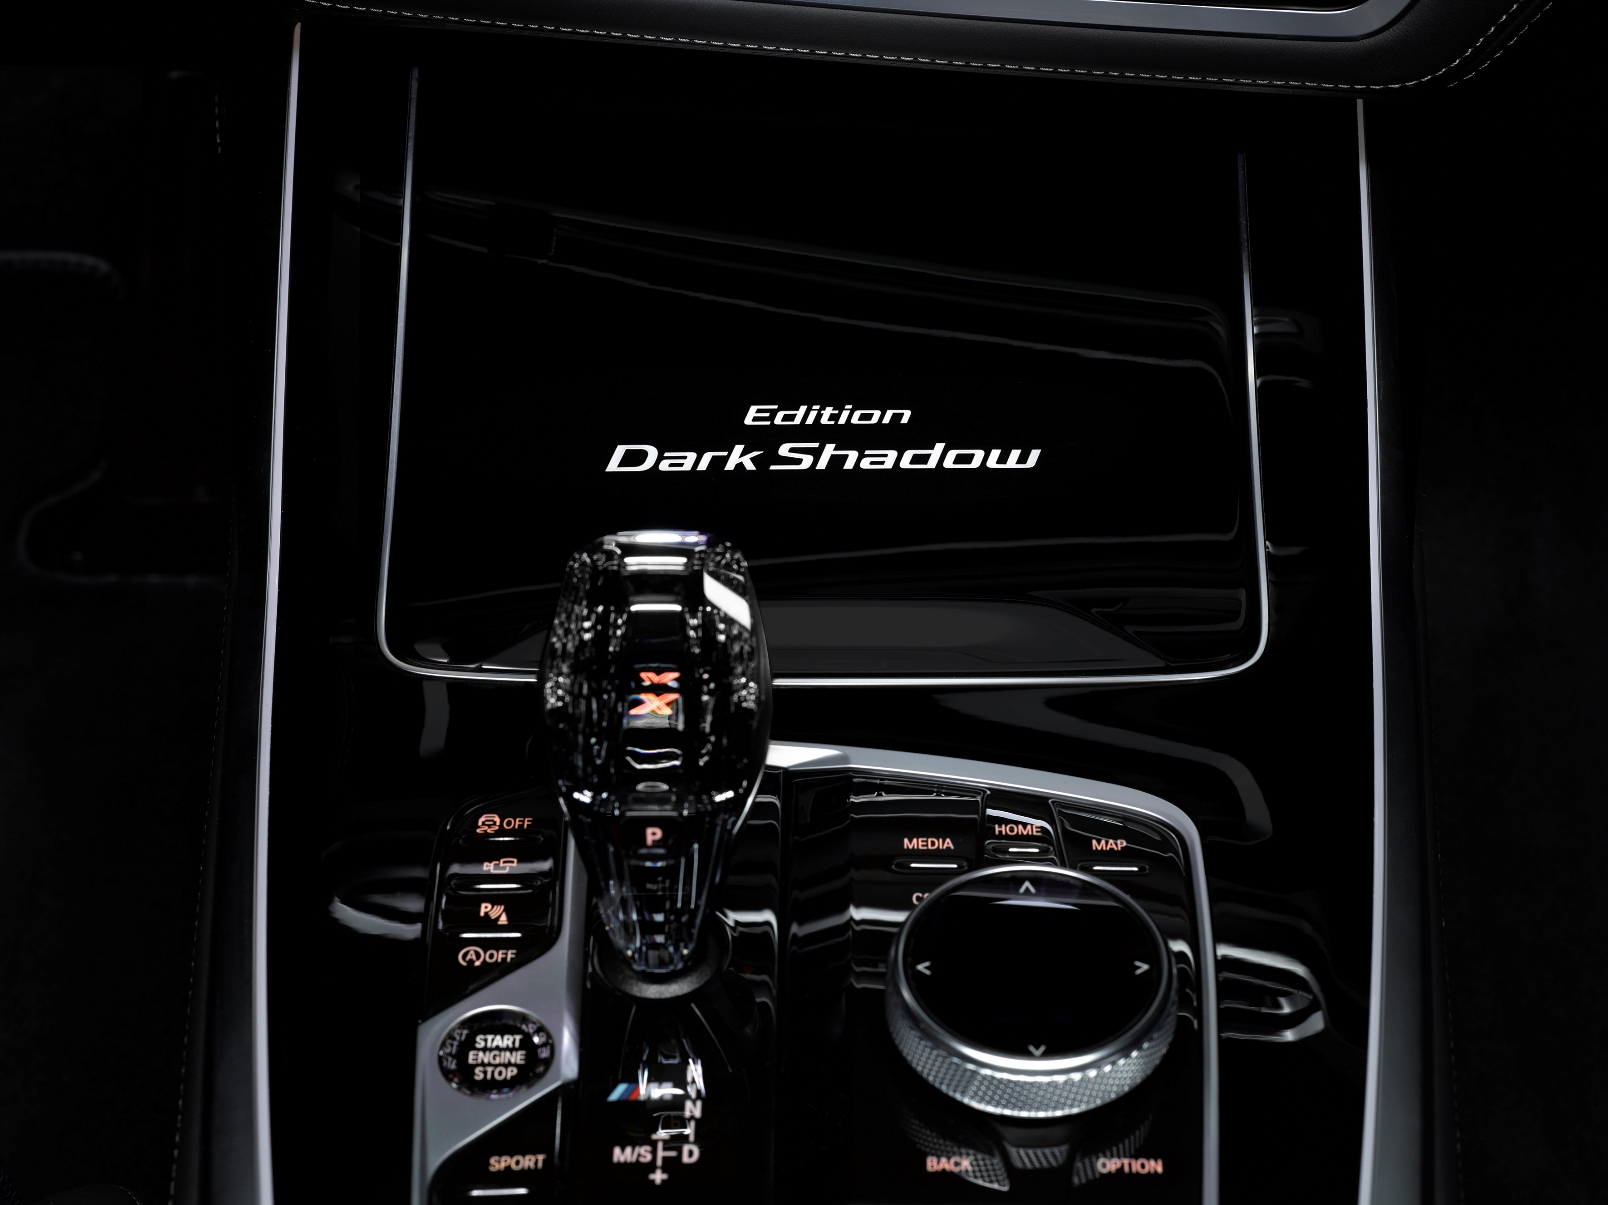 Bmw X7 Dark Shadow Edition (13)